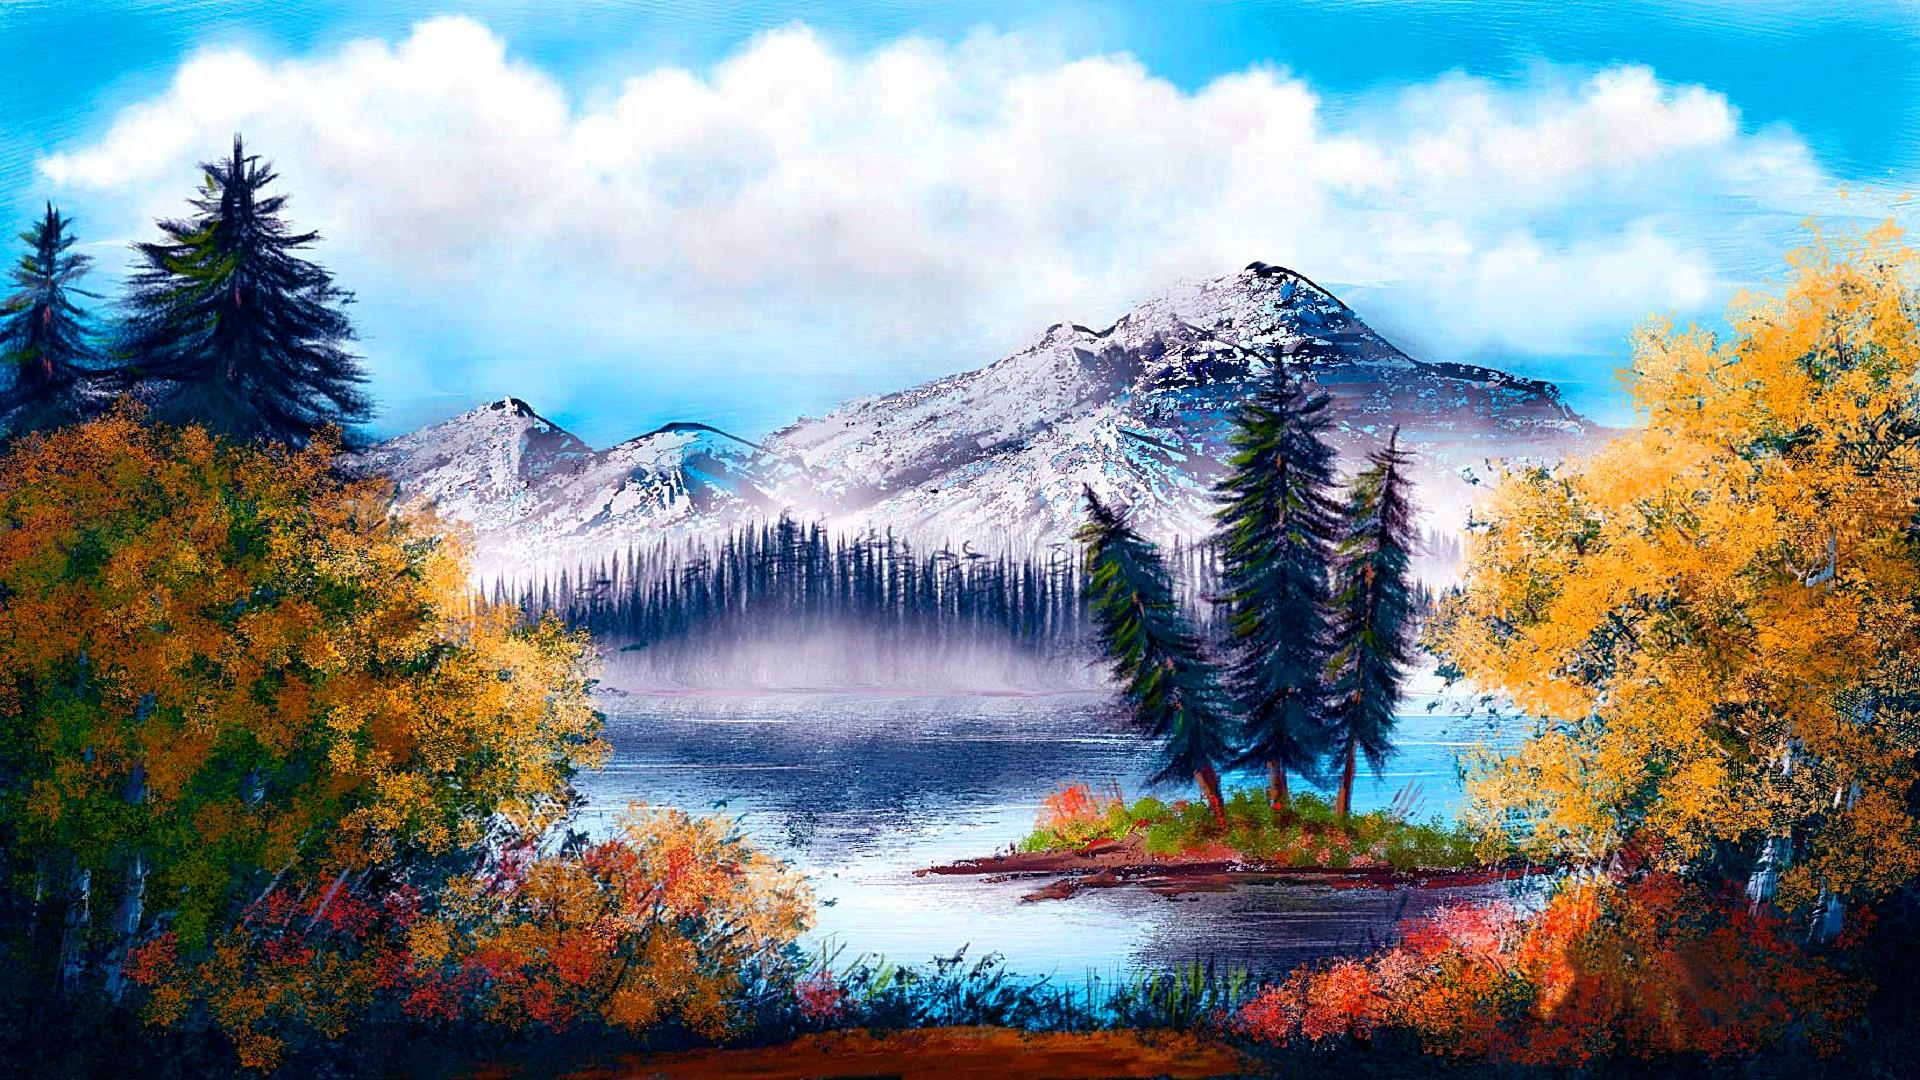 55 Landscape Painting Wallpapers   Download at WallpaperBro 1920x1080